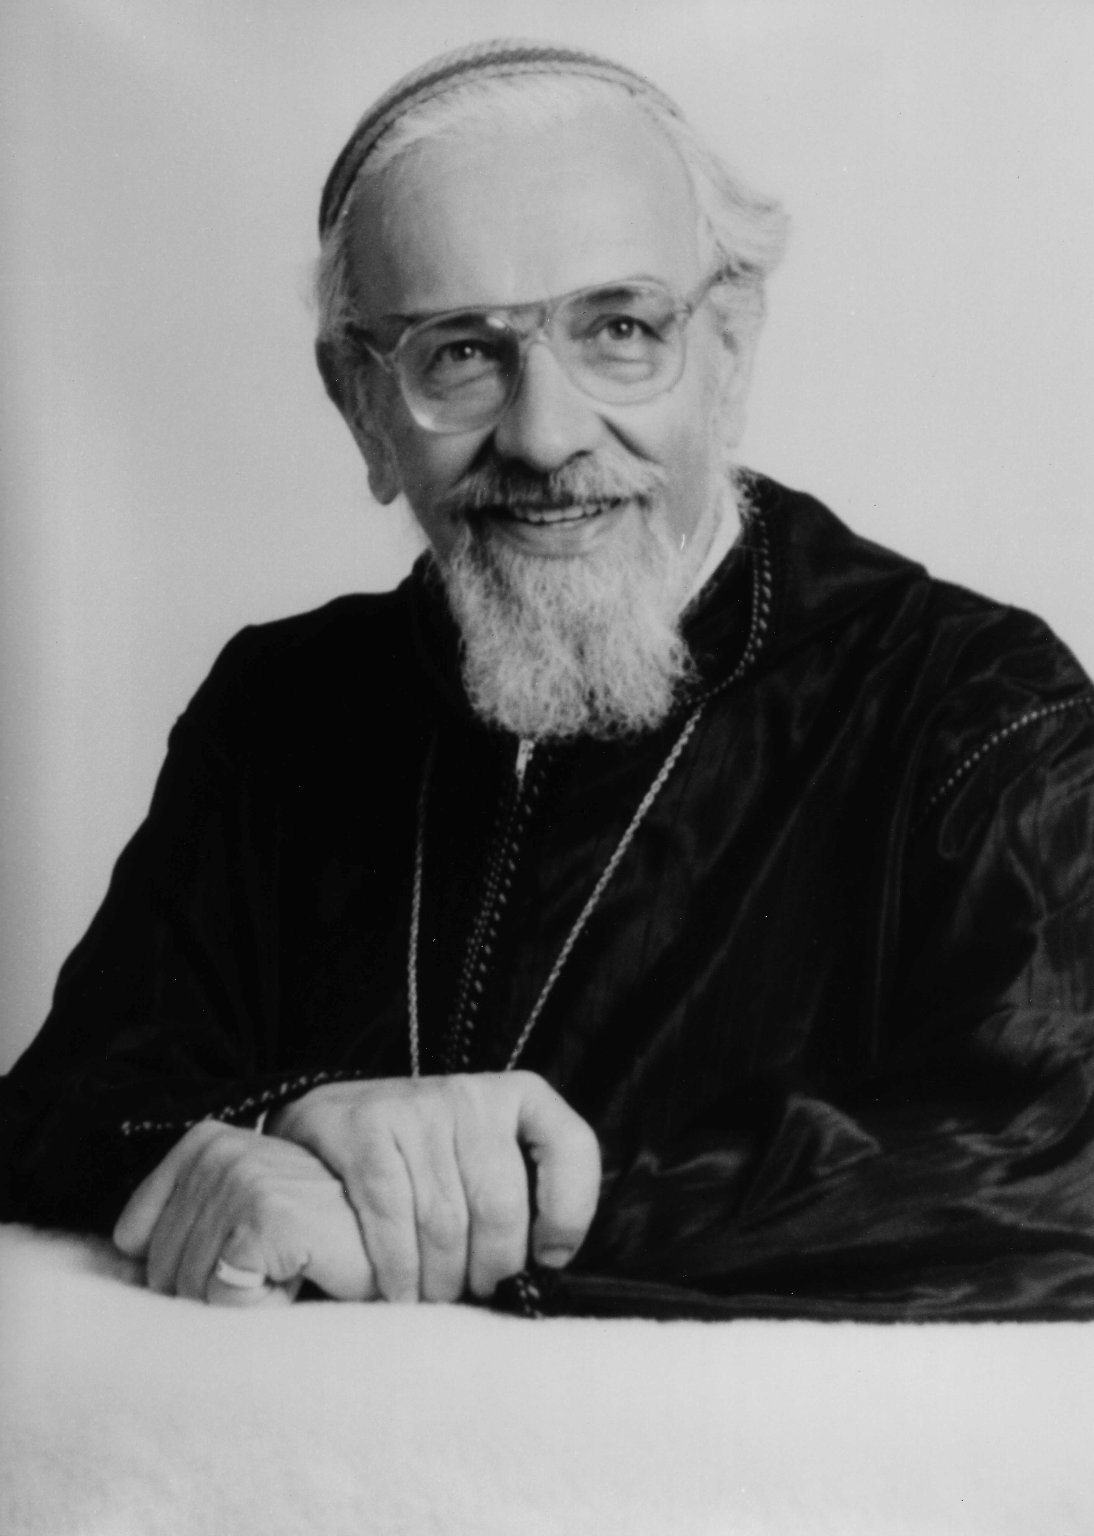 Studio portrait of Rabbi Zalman Schachter-Shalomi in a black velvet robe with embroidery, holding his own wrist, ca. 1985.